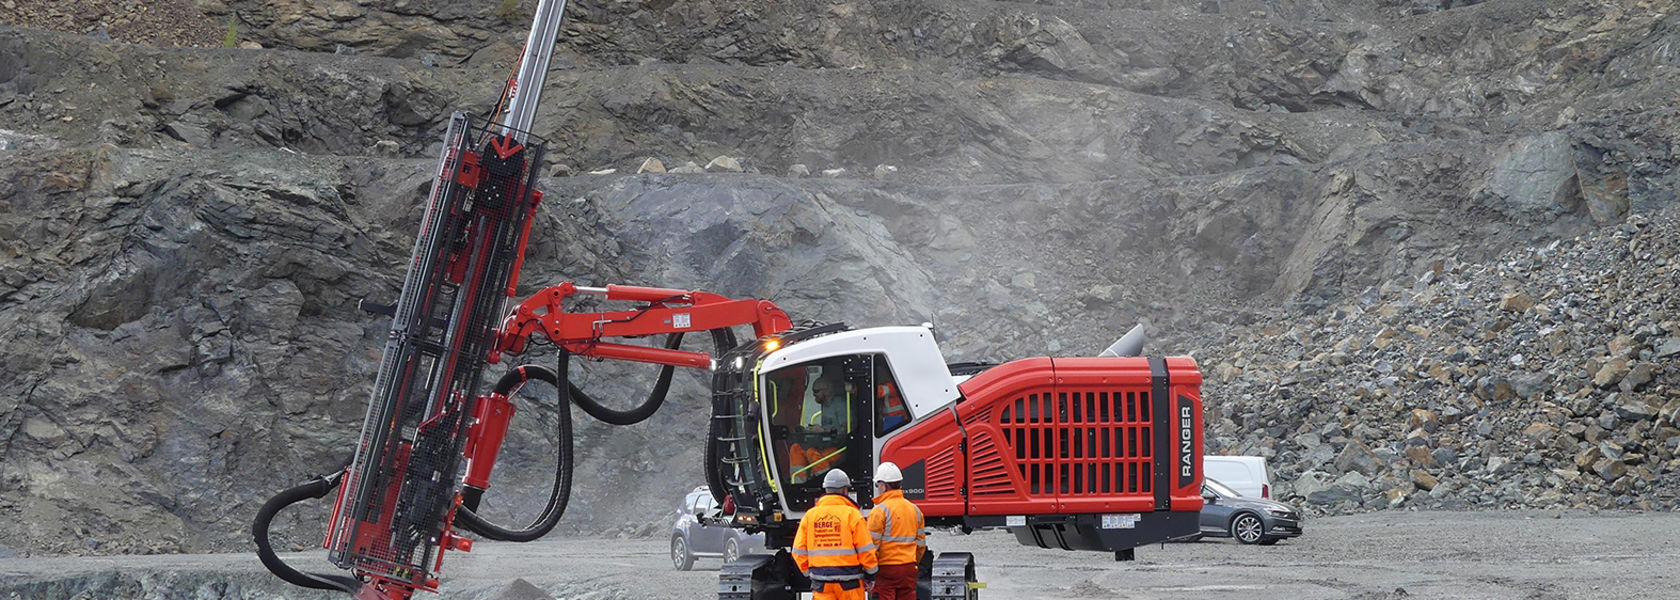 The changing face of drill and blast - GeoDrillingInternational